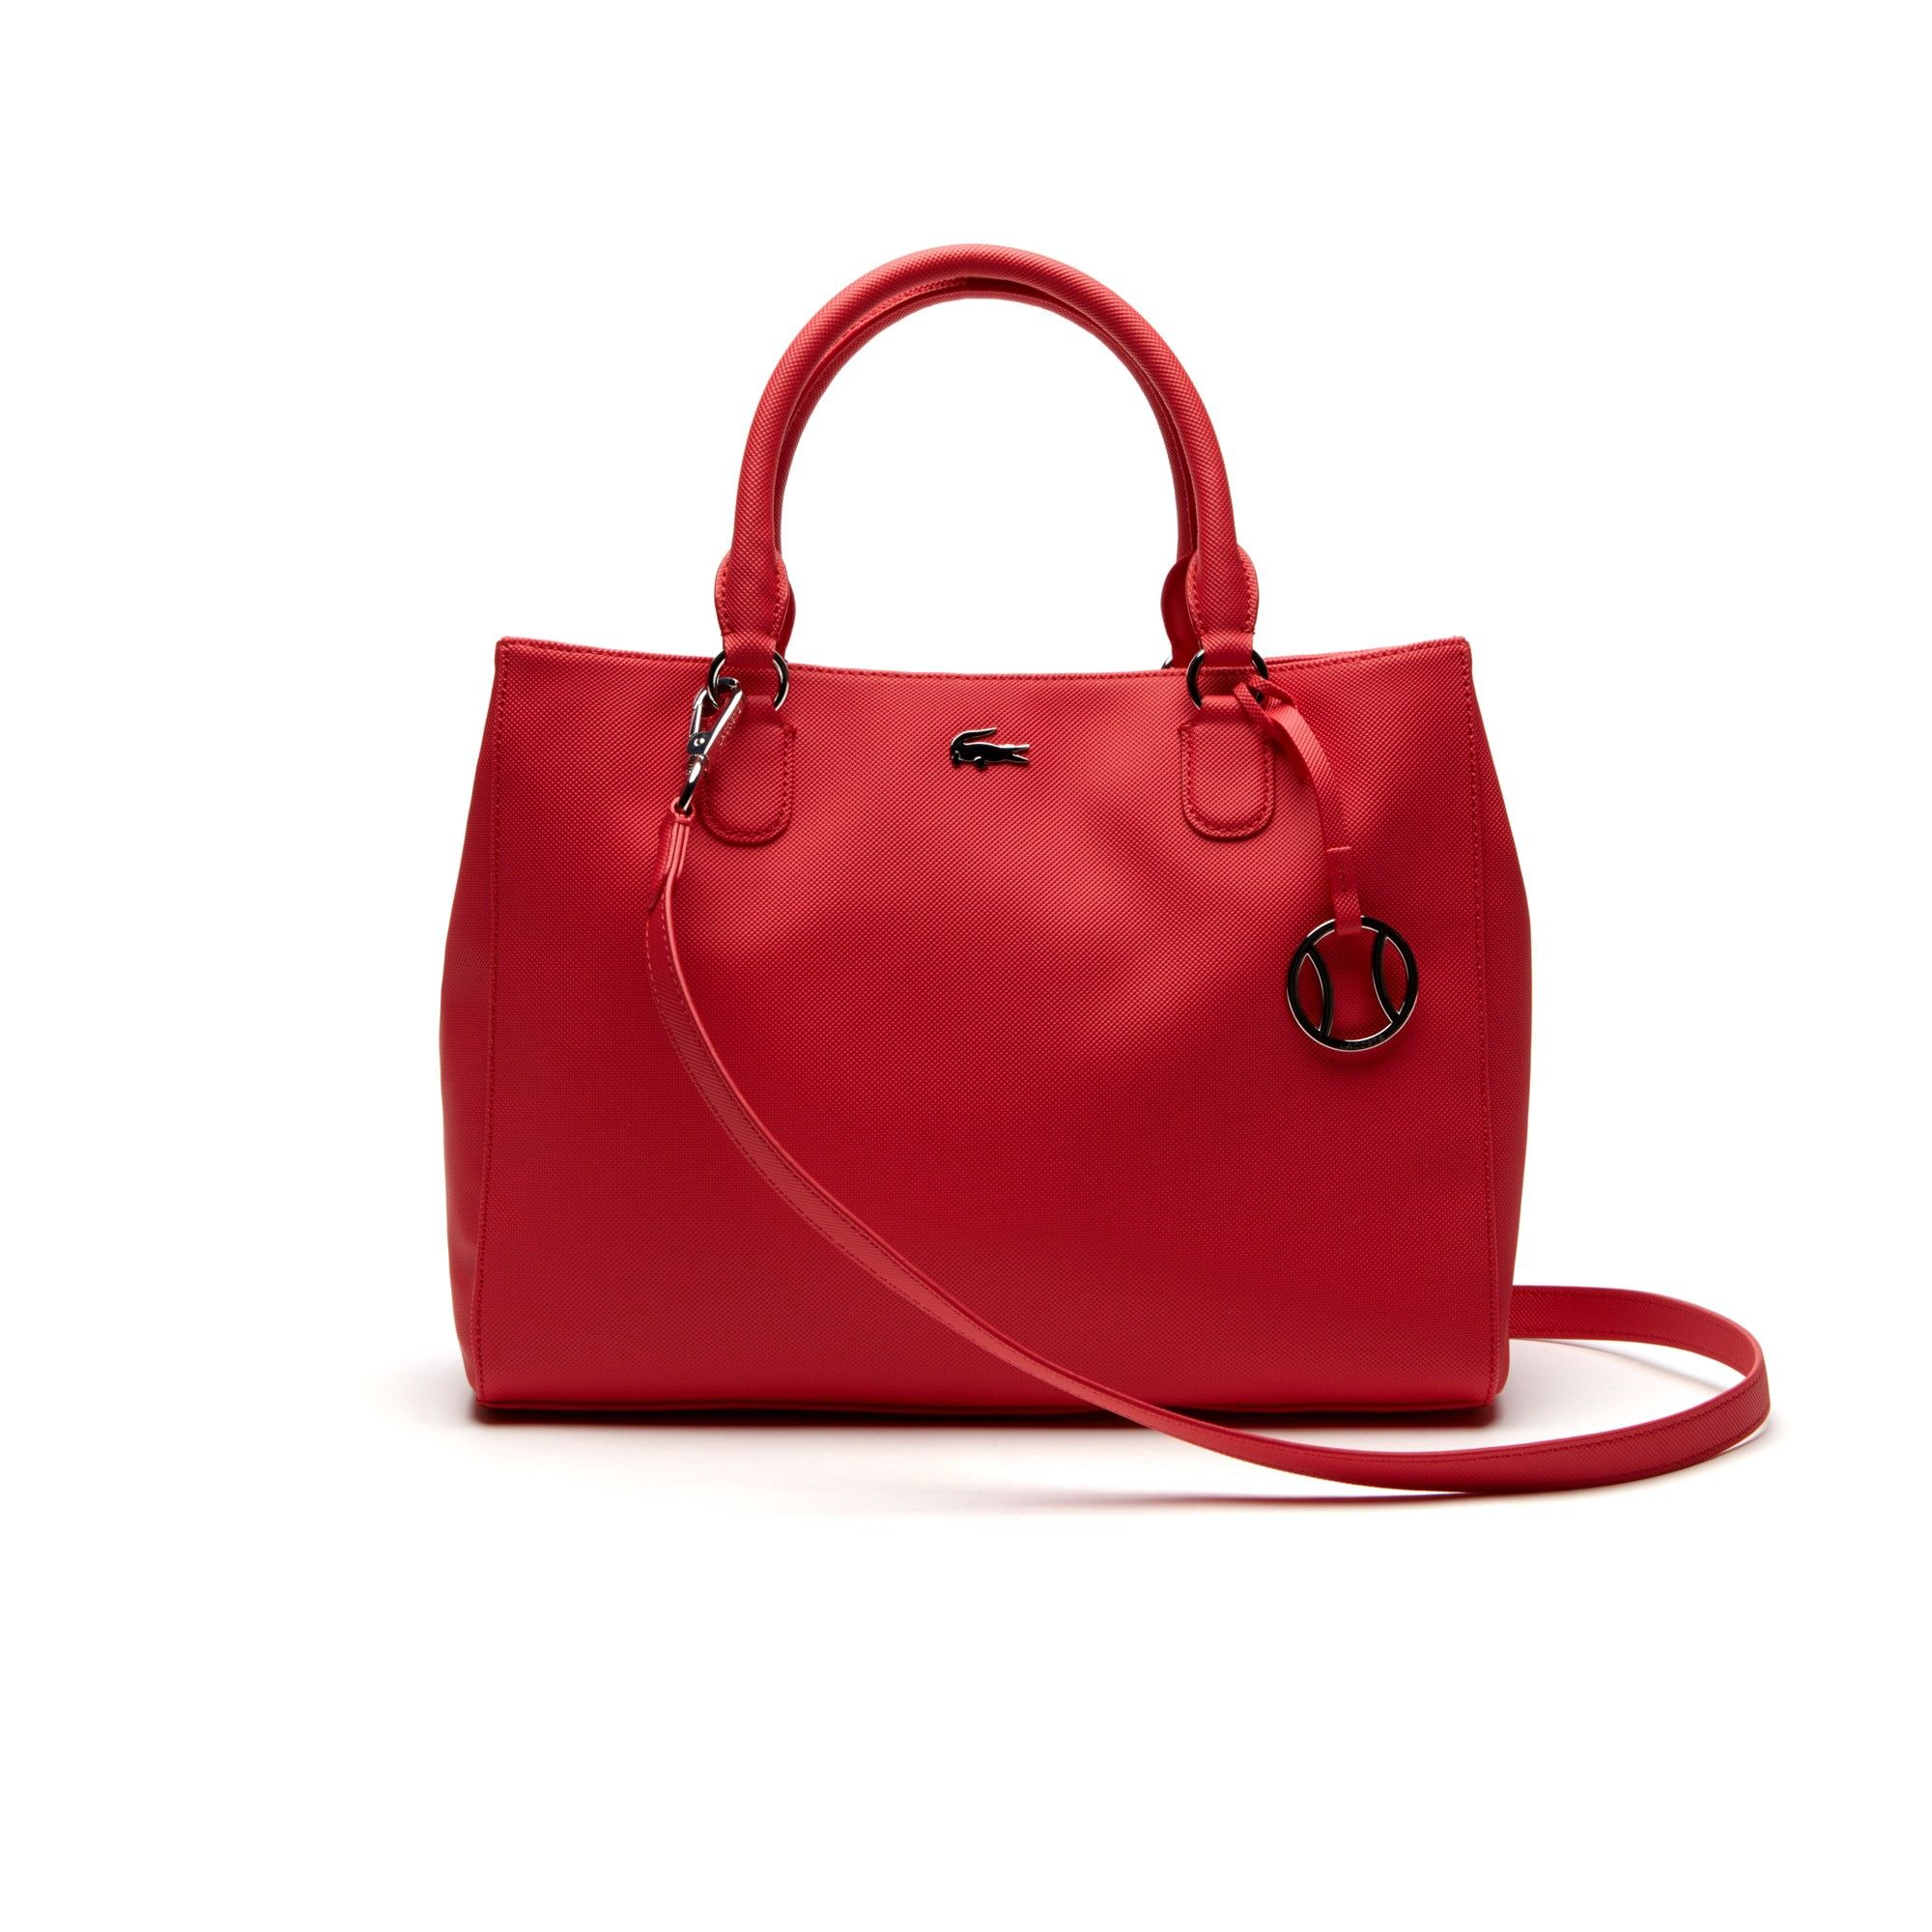 5daba77bcb98c6 LACOSTE Women s Daily Classic Fine Piqué Grains Dual Carry Crossover Bag -  teaberry.  lacoste  bags  shoulder bags  canvas  pvc  charm  accessories